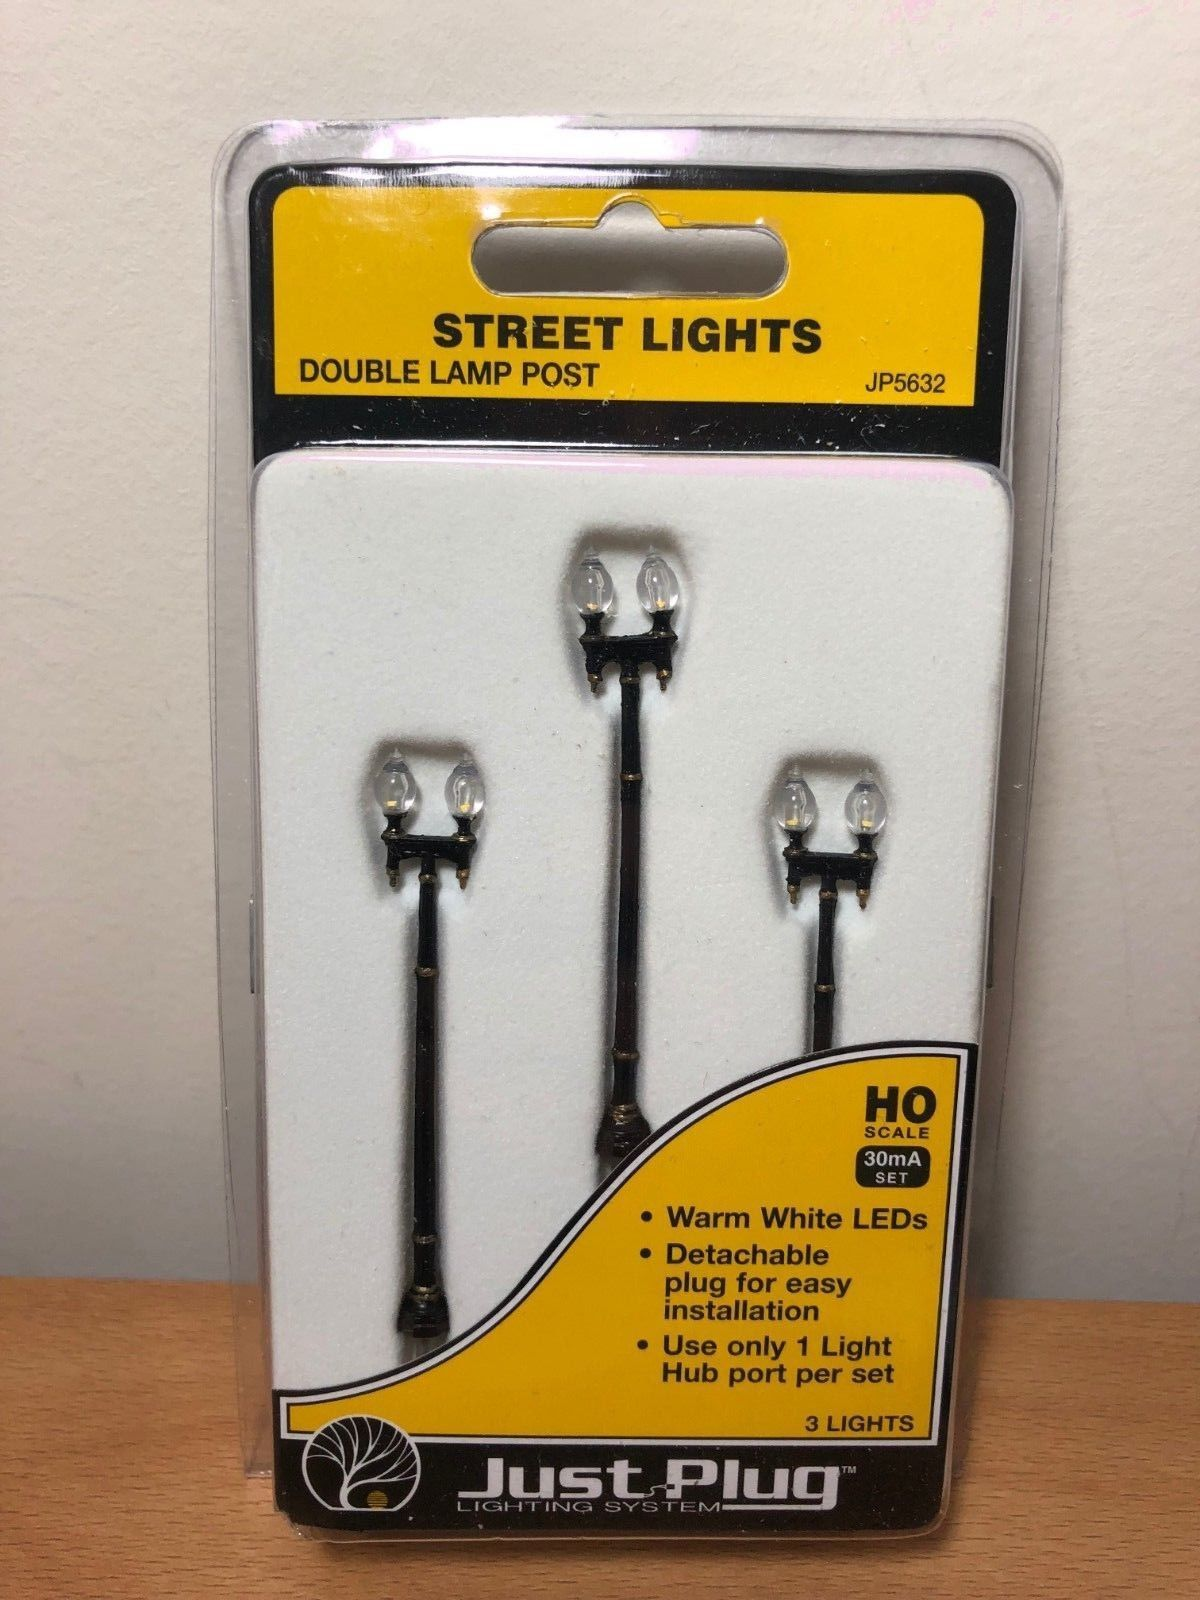 Lamps And Lights 31107 Woodland Scenics Ho Scale Jp5632 Double Lamp Post Street Light Pack Of 3 Buy It Now Only 15 99 Street Light Lights Lamp Post